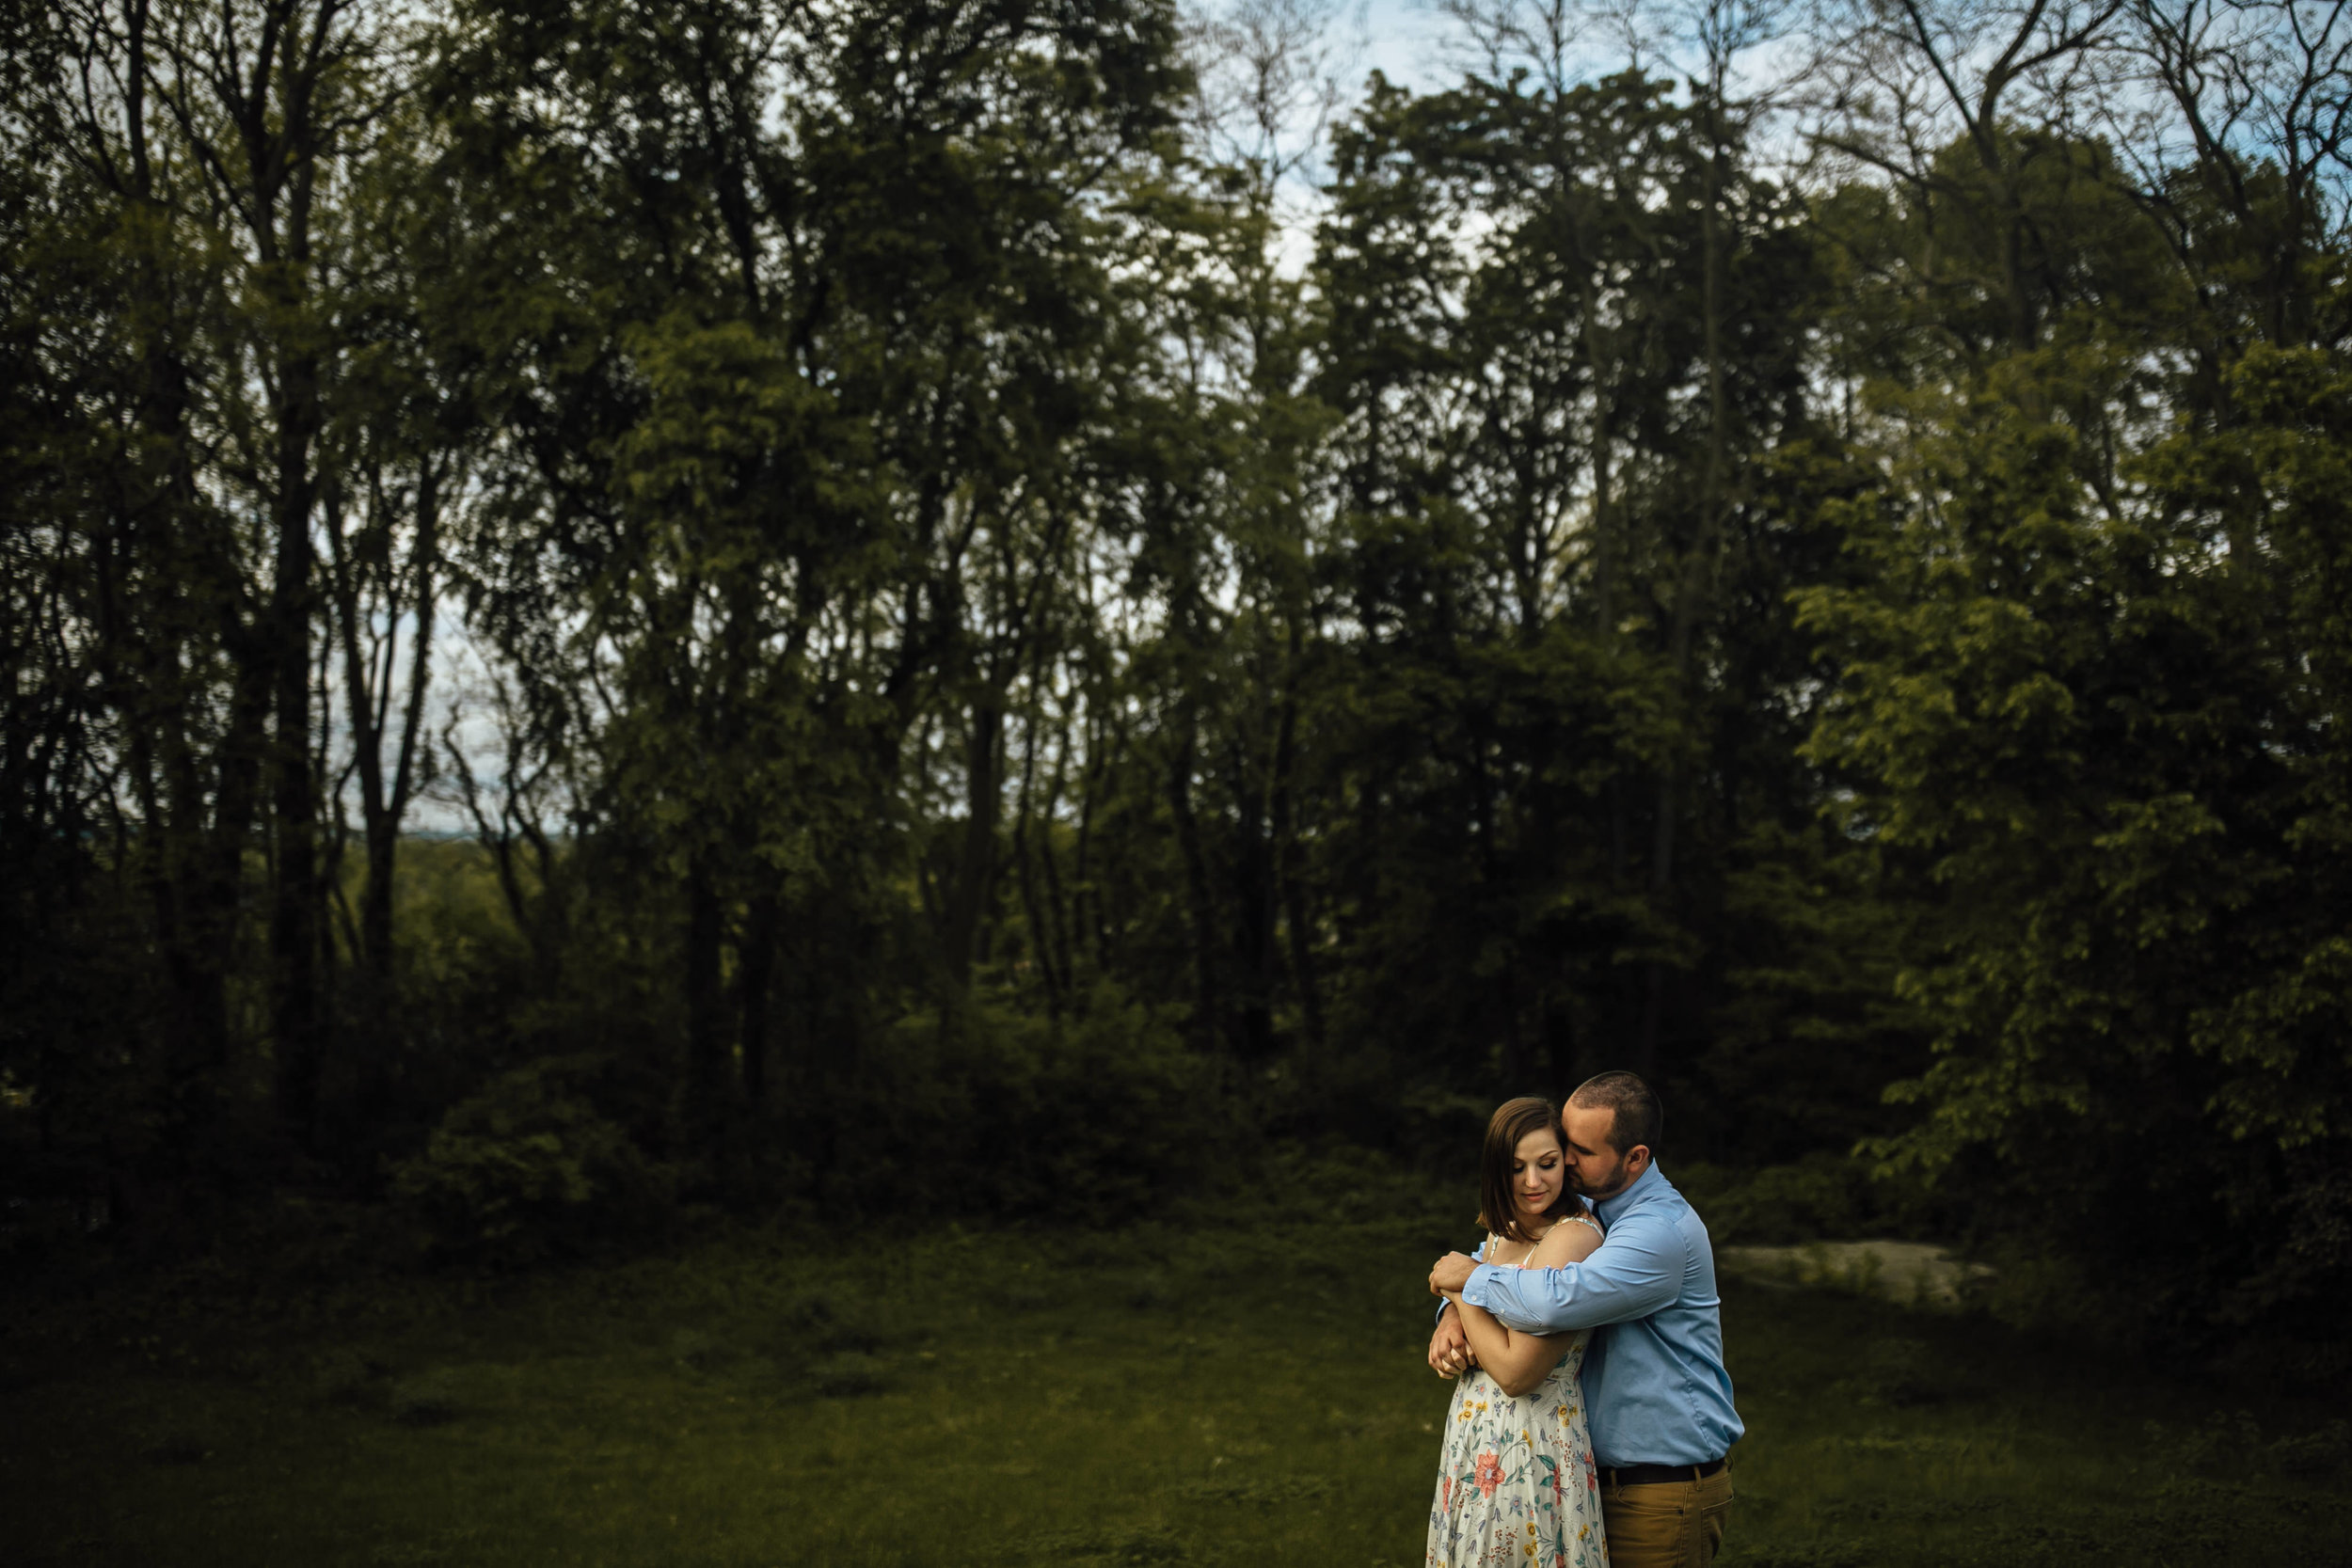 2018-5-Joanna-Tyler-Kalamazoo-Engagement-Michigan-Wedding-Photographer-208.jpg